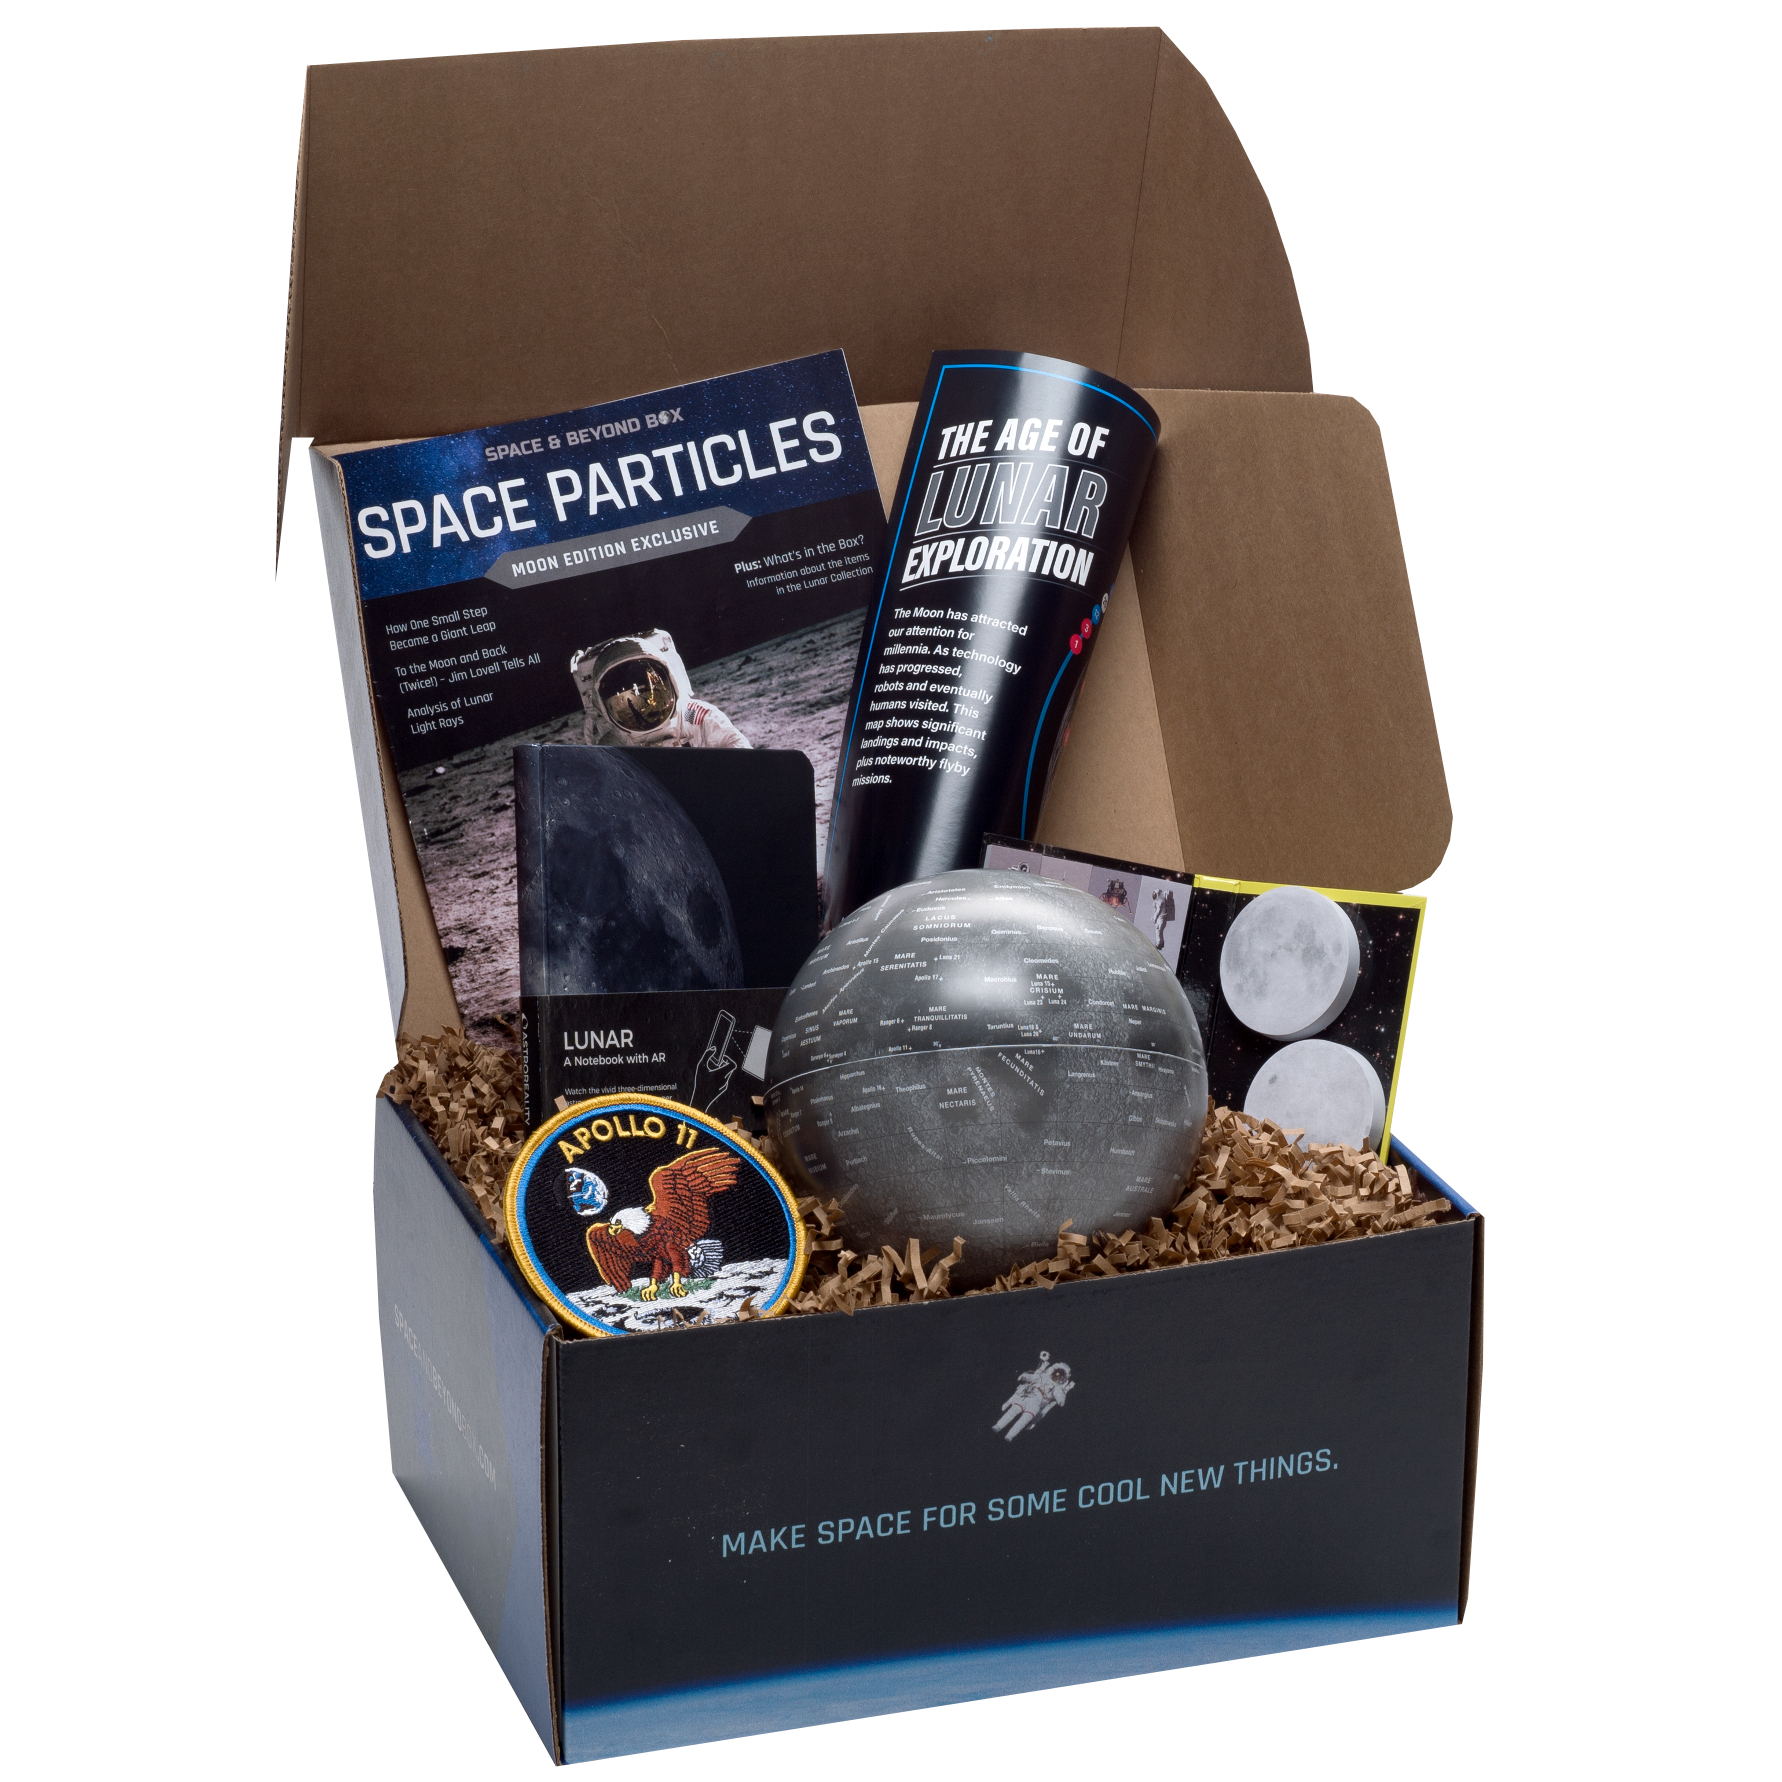 The Lunar Collection Box